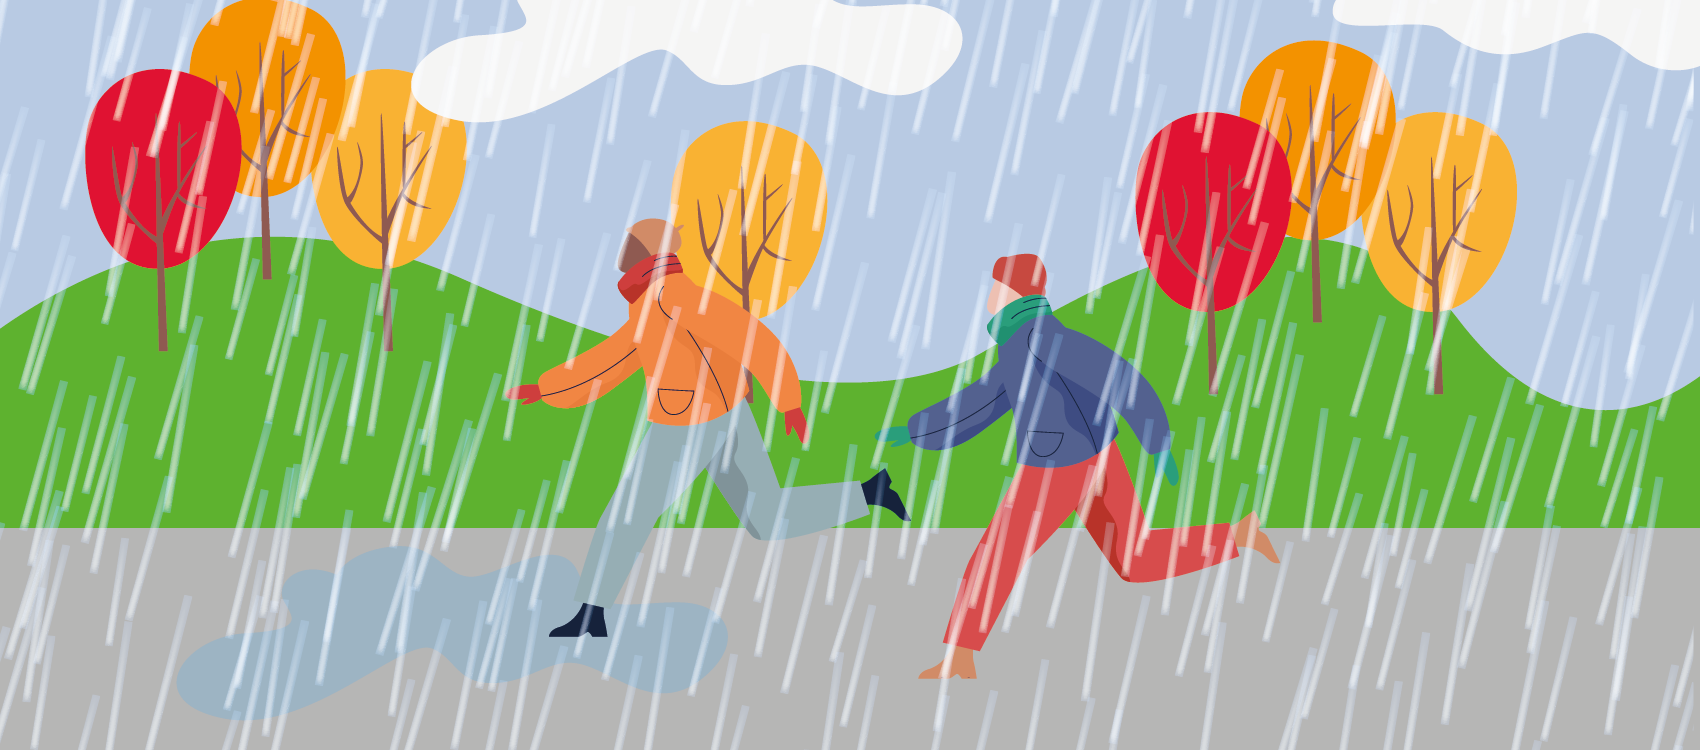 An illustration of two people running in the rain